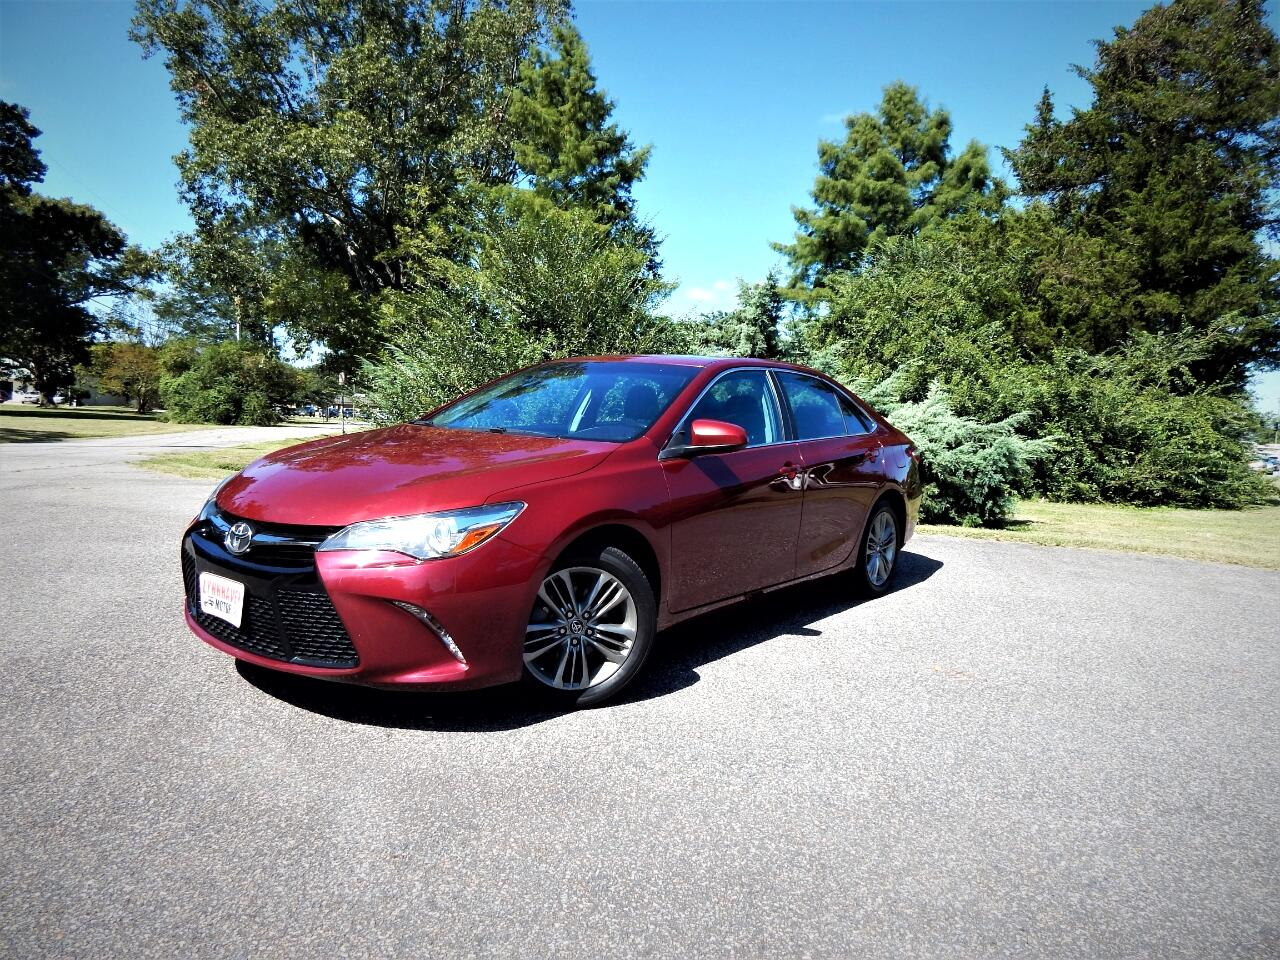 2016 Toyota Camry SE w/ Power Sunroof